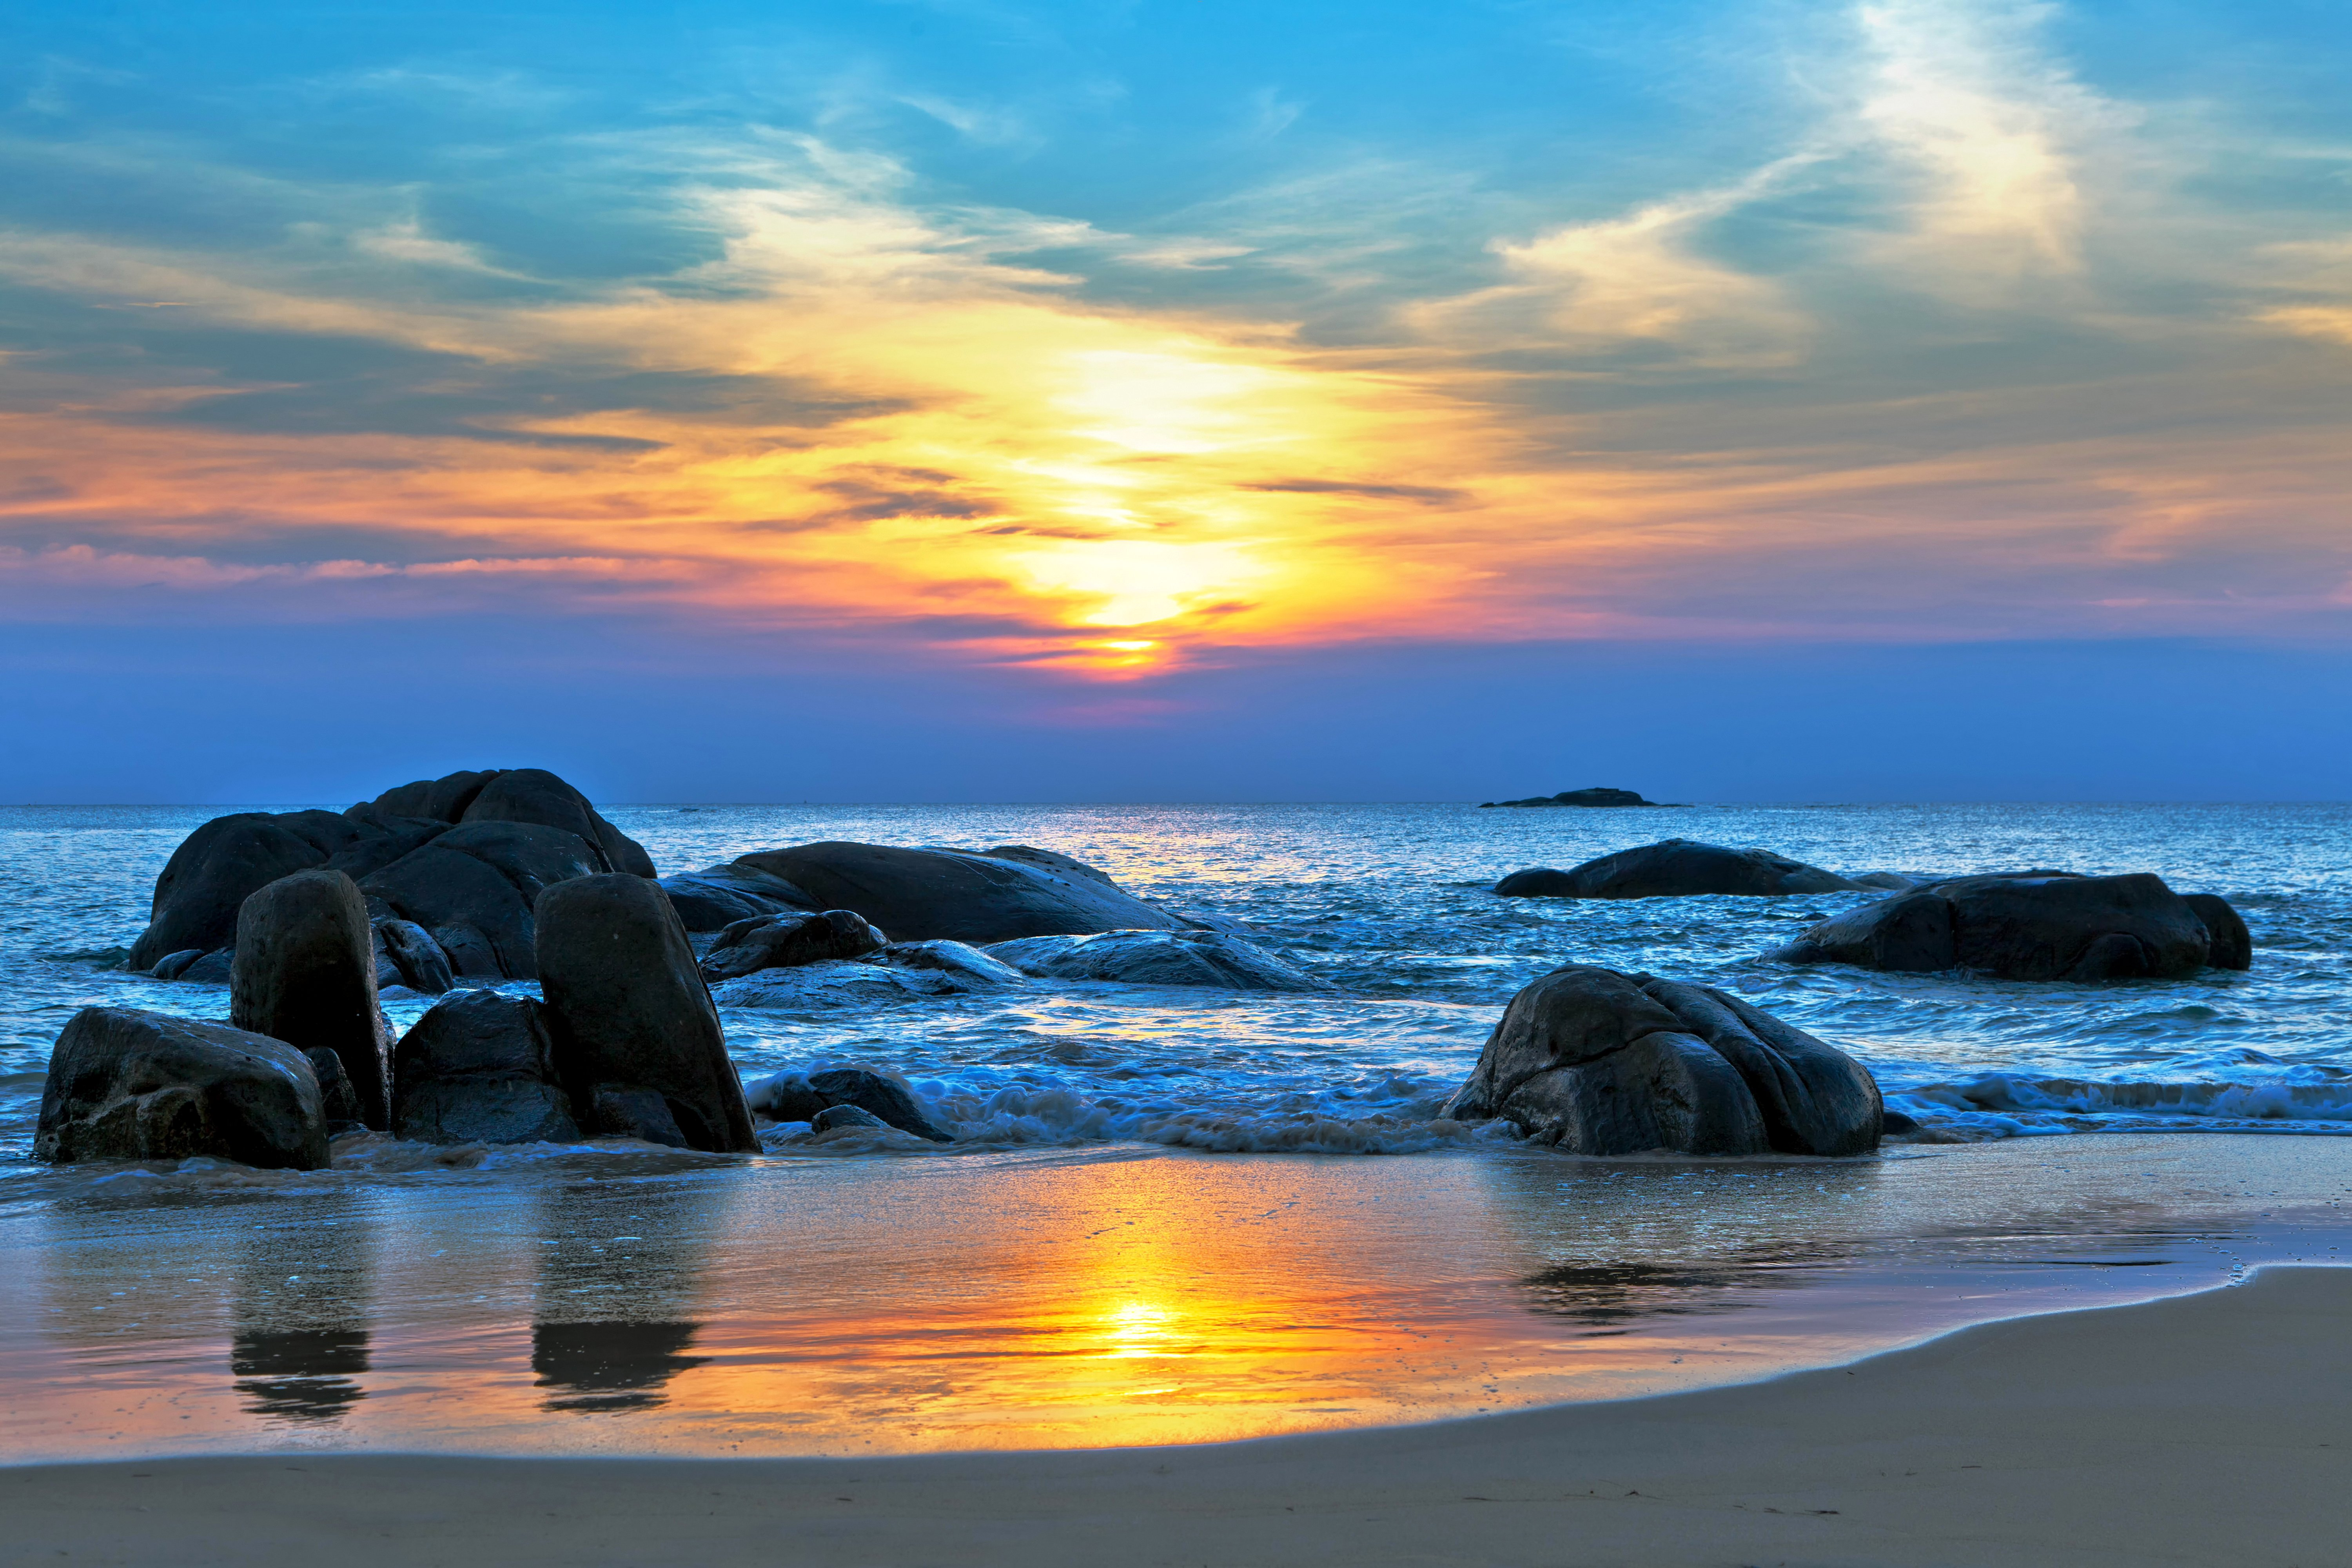 coast stones sky sunrise sunset scenery sea ocean beach waves